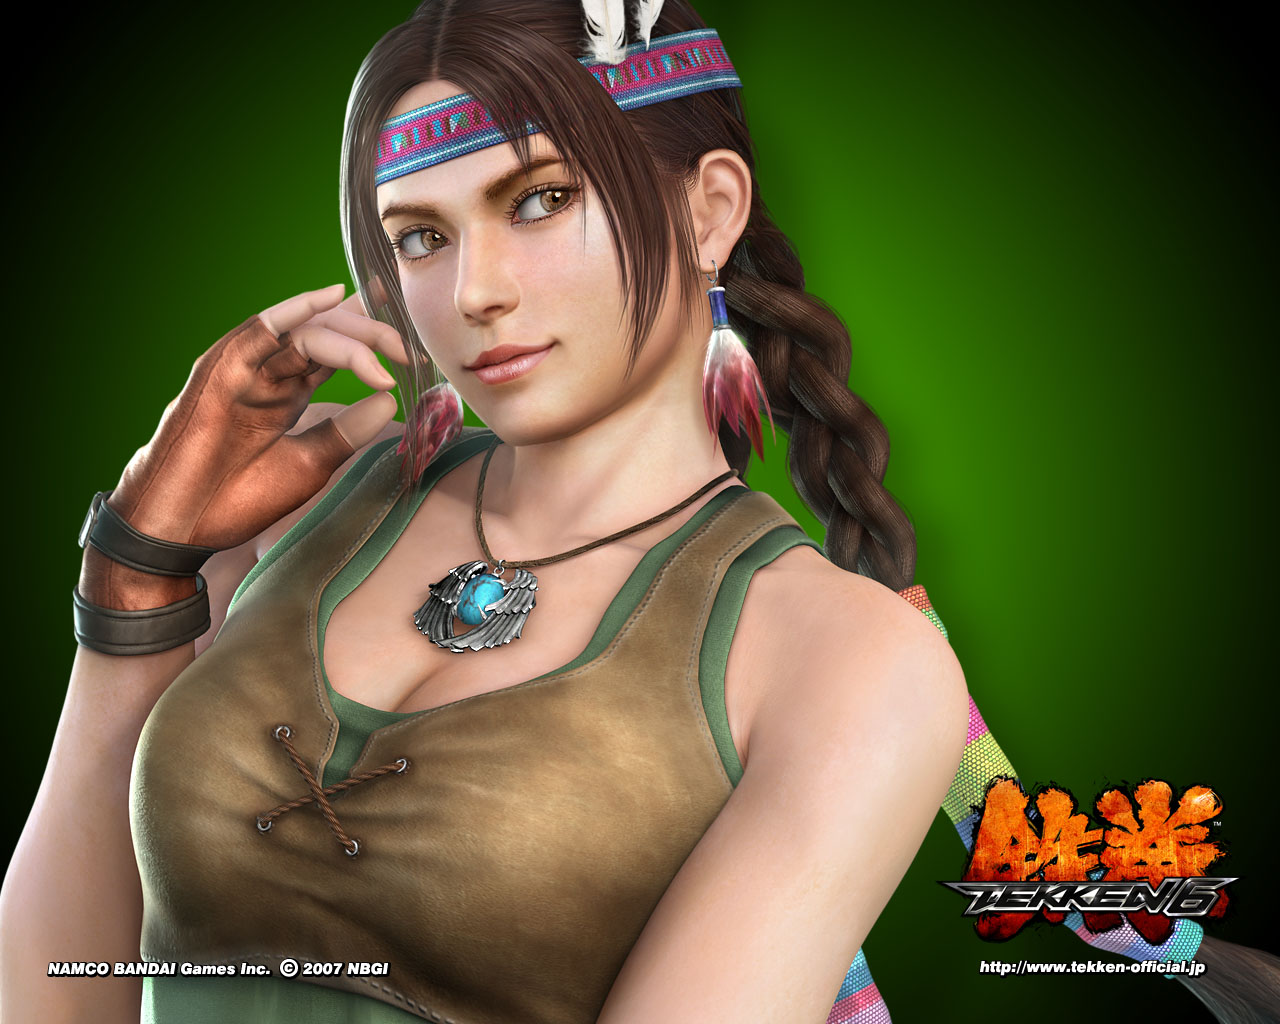 HD Wallpapers Julia Chang Tekken 6